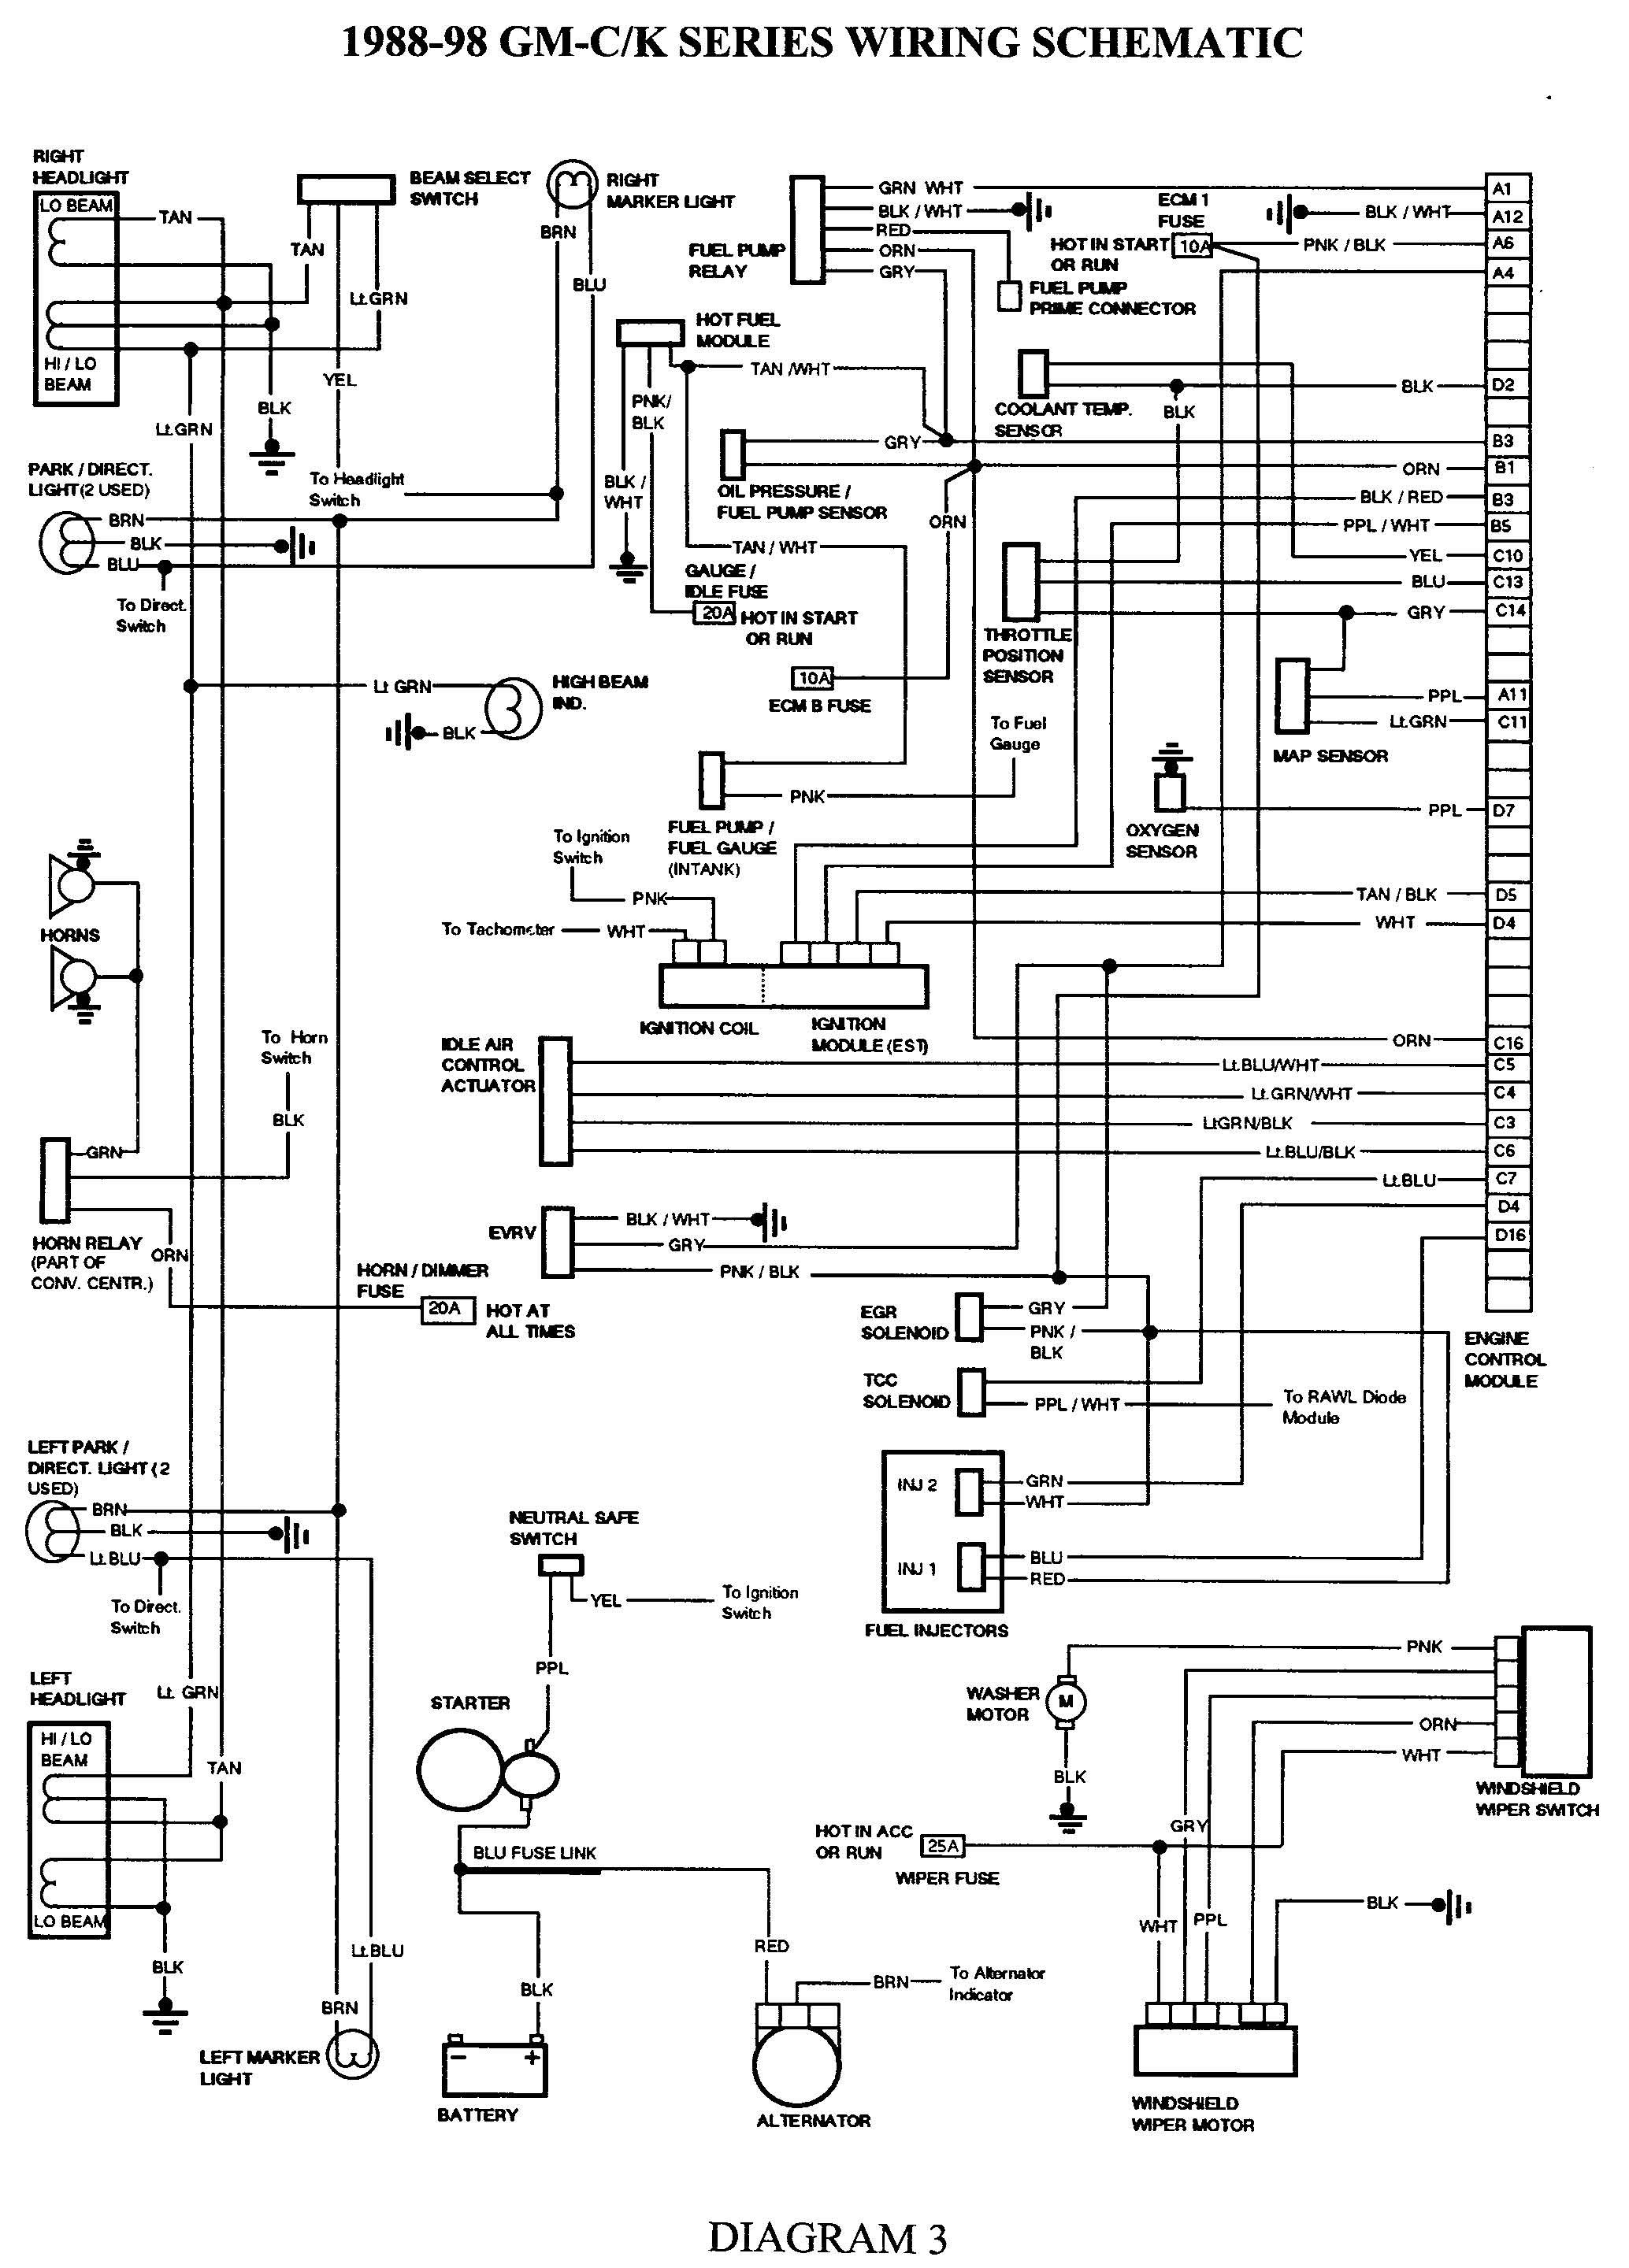 b2f2e5dbdc07dada83ef514f6d4ce3d4 gmc truck wiring diagrams on gm wiring harness diagram 88 98 kc gm truck wiring harness at cita.asia